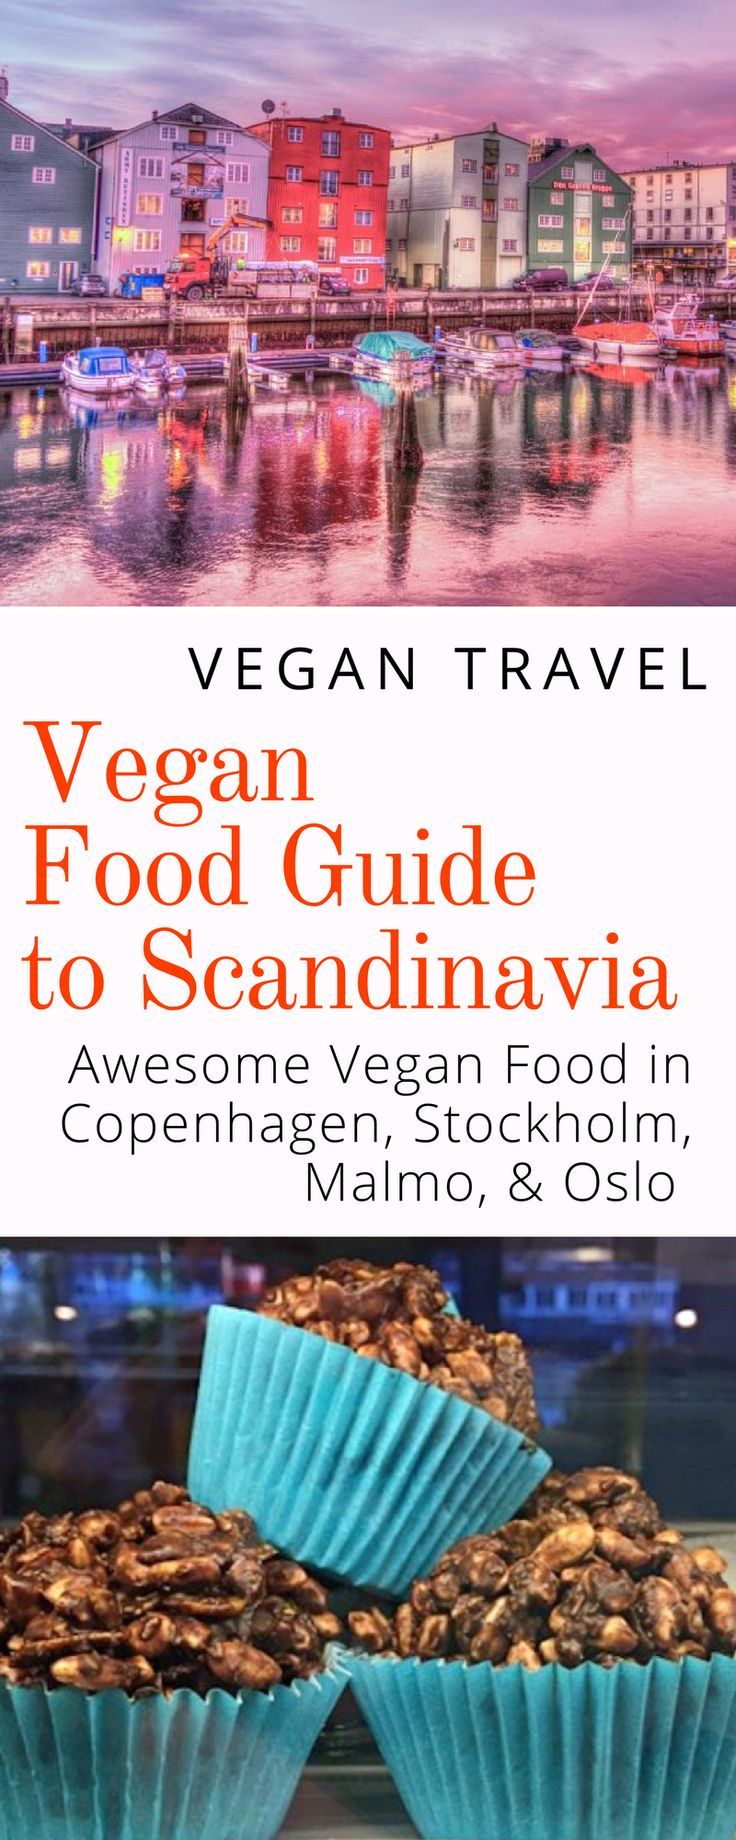 Vegan Guide to Scandinavia: Some of the best vegan food in Stockholm, Copenhagen, Malmo, and Oslo. Click here to discover the best vegan food in Scandinavia.